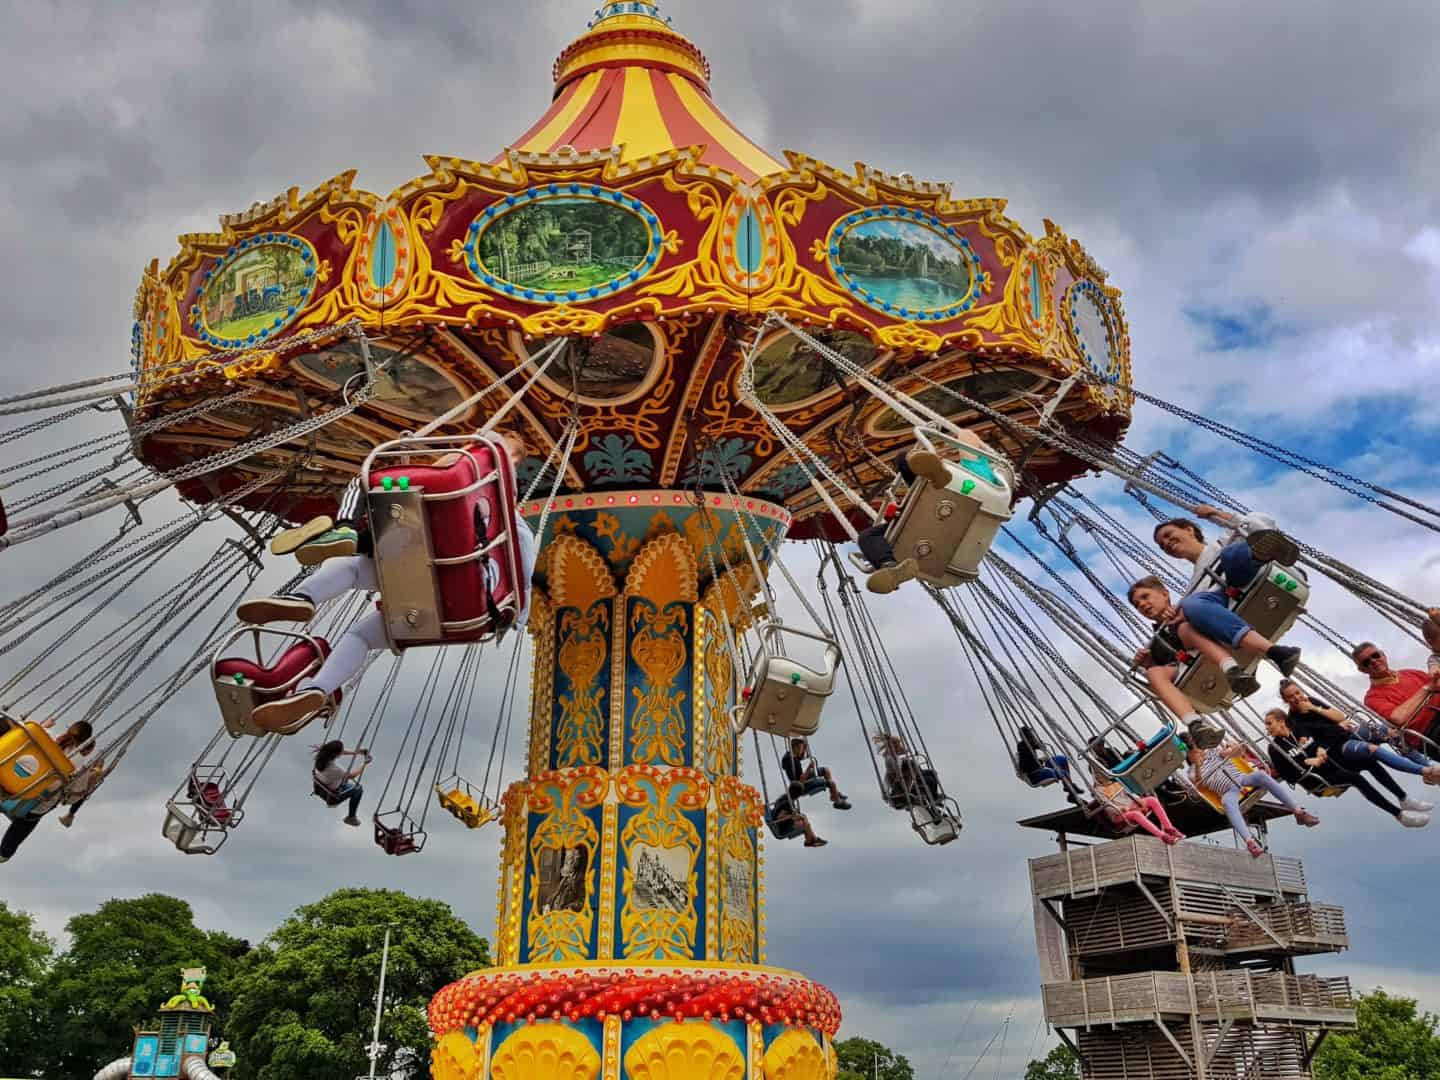 Dog friendly family day out at Wicksteed Park